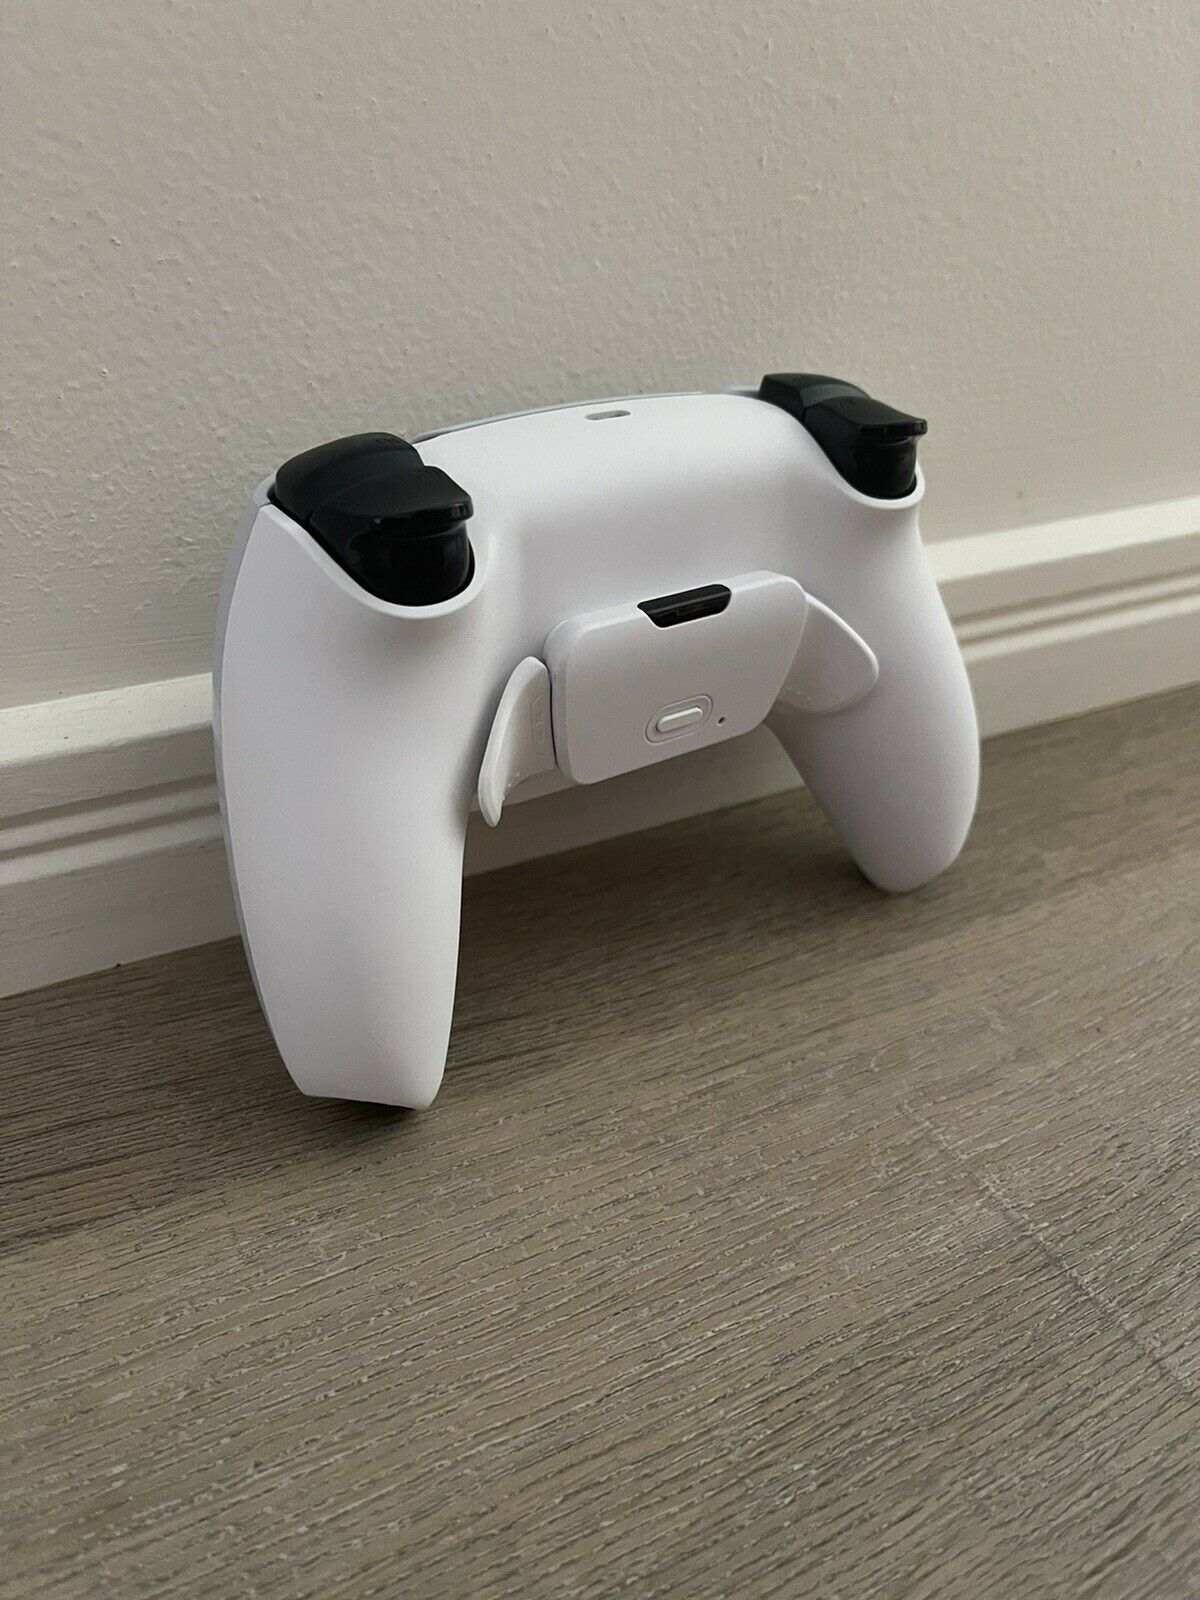 PS5 dualsense controller With Custom Back Paddles (Buttons)